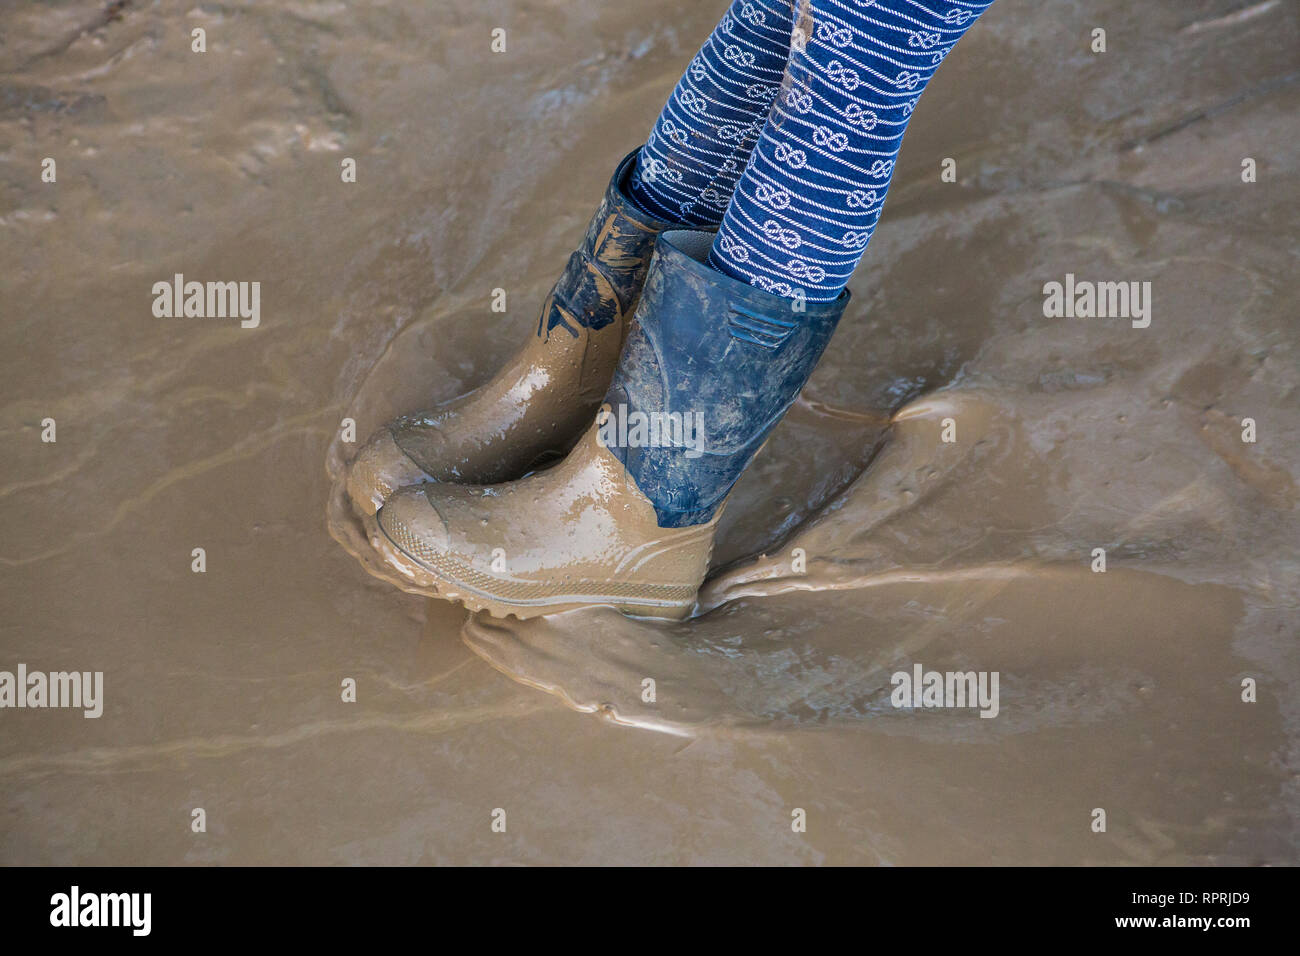 Muddy wellies in a muddy puddle, Sussex, UK Stock Photo